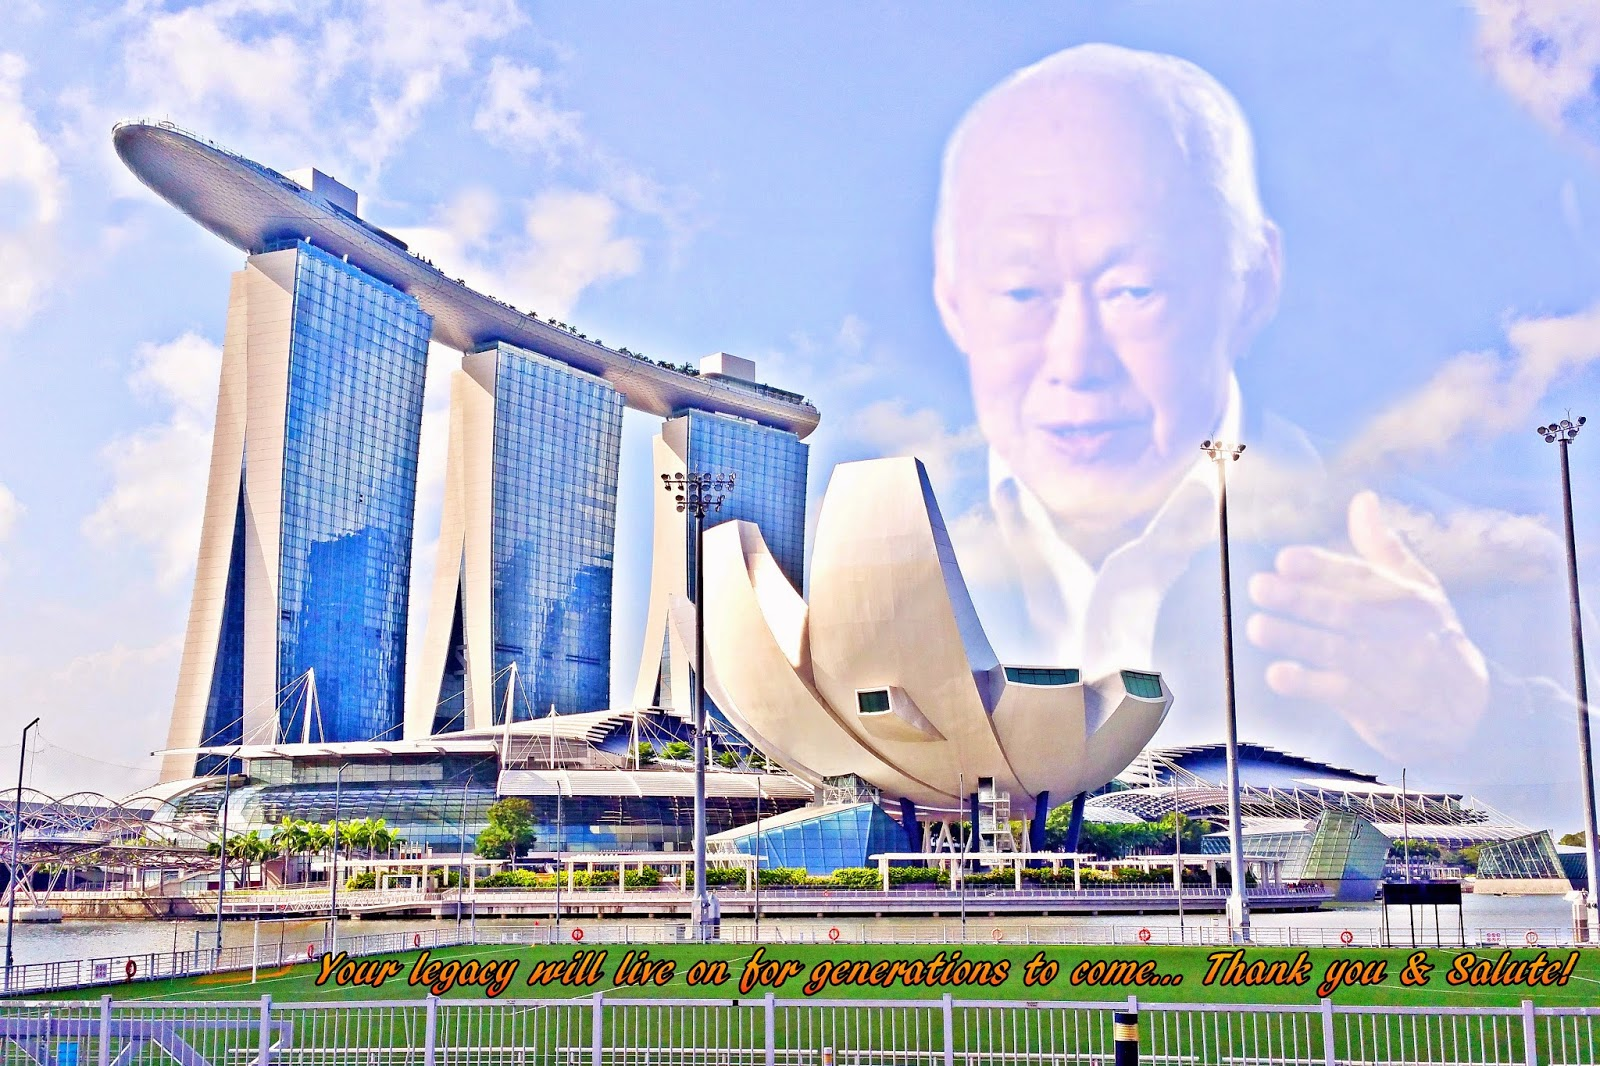 Singapore and Our Founding Father Lee Kuan Yew